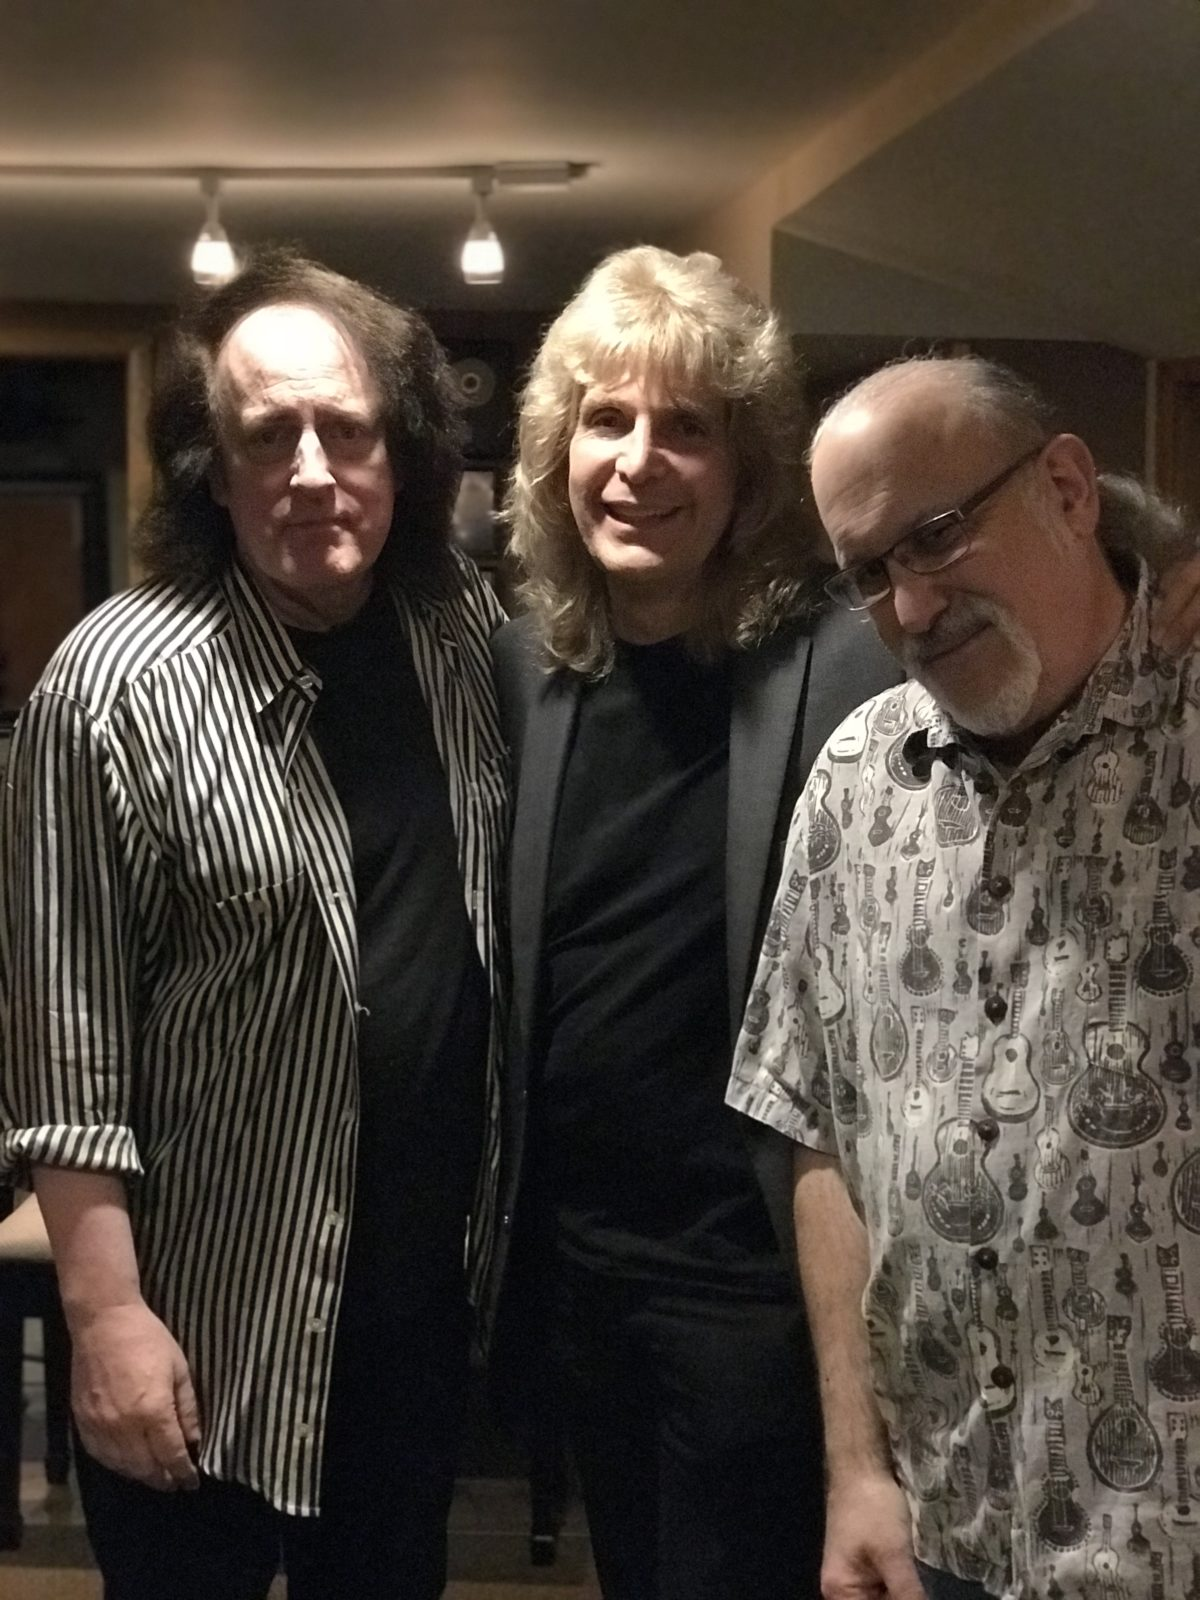 Tommy James, Glenn Taylor (the Shondells) and Pastor Caspar